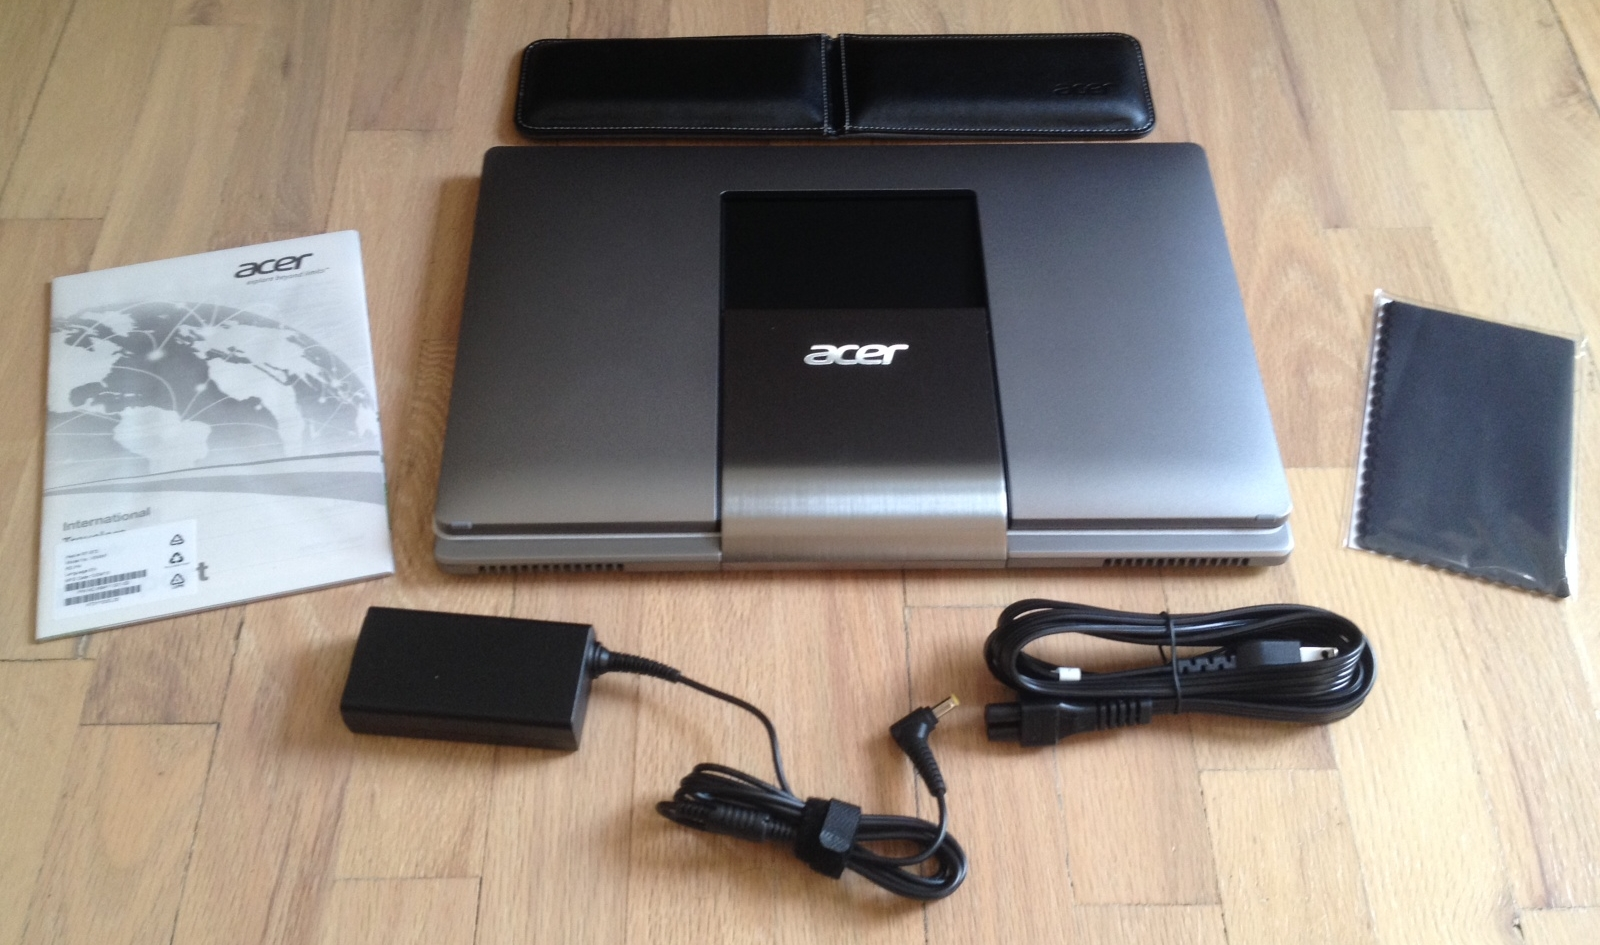 Inside the box is the Acer with prominent silver Ezel hinge, a keyboard palm rest, power supply and cord, cleaning cloth and manual.